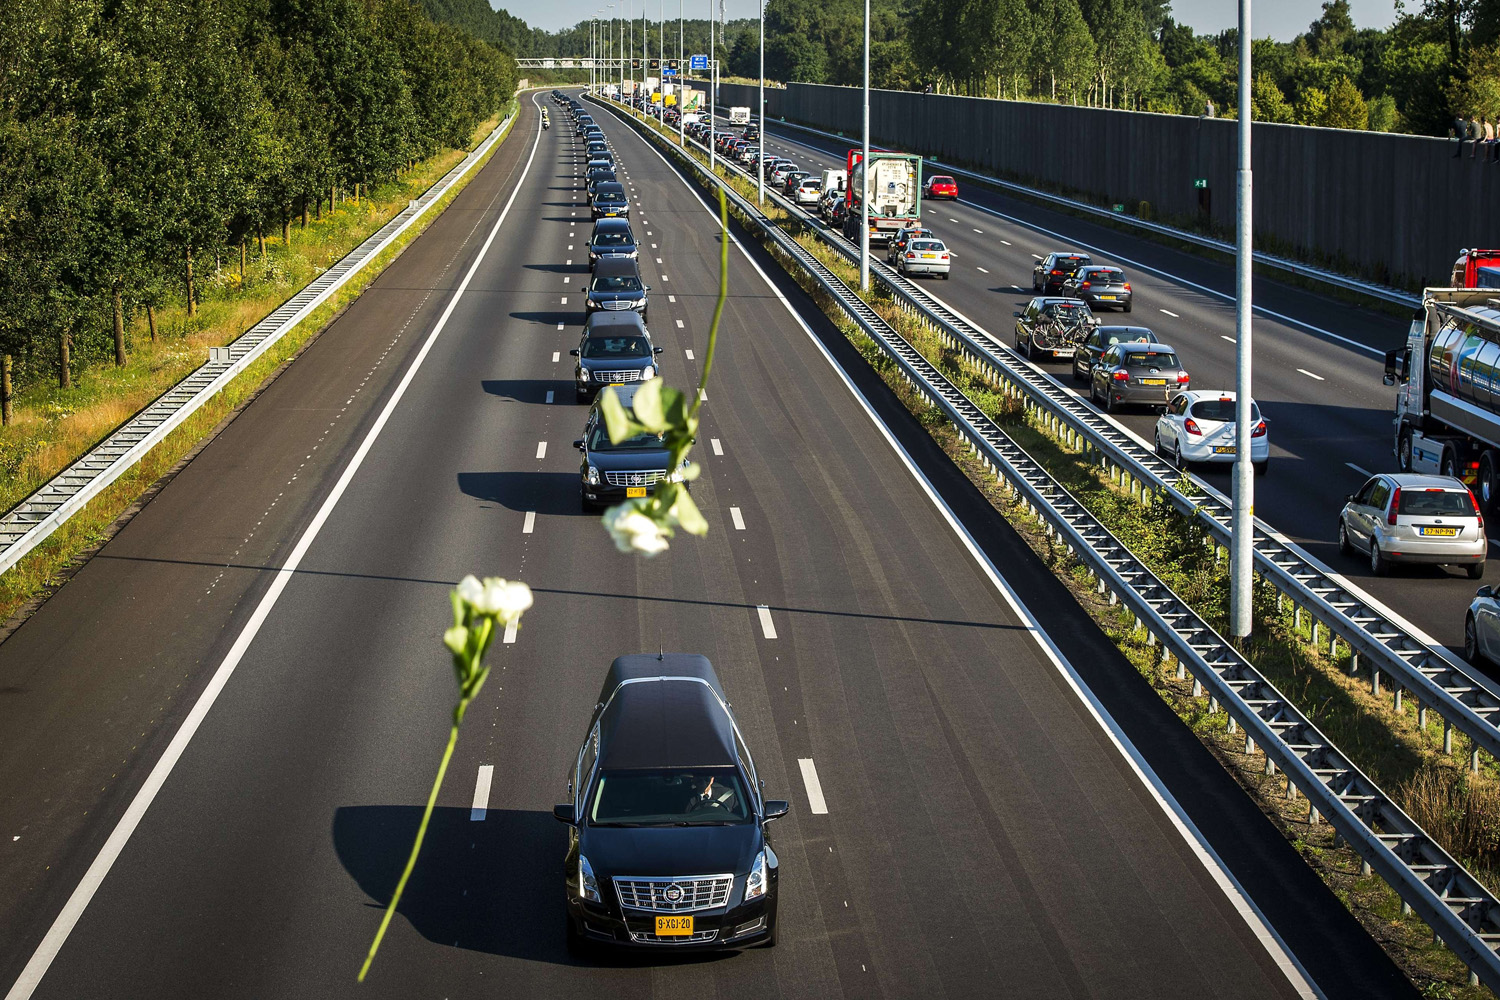 Jul. 23, 2014. A convoy of hearses carrying coffins containing the remains of victims of the downed Malaysia Airlines flight MH17, drives from the Eindhoven Airbase to Hilversum.